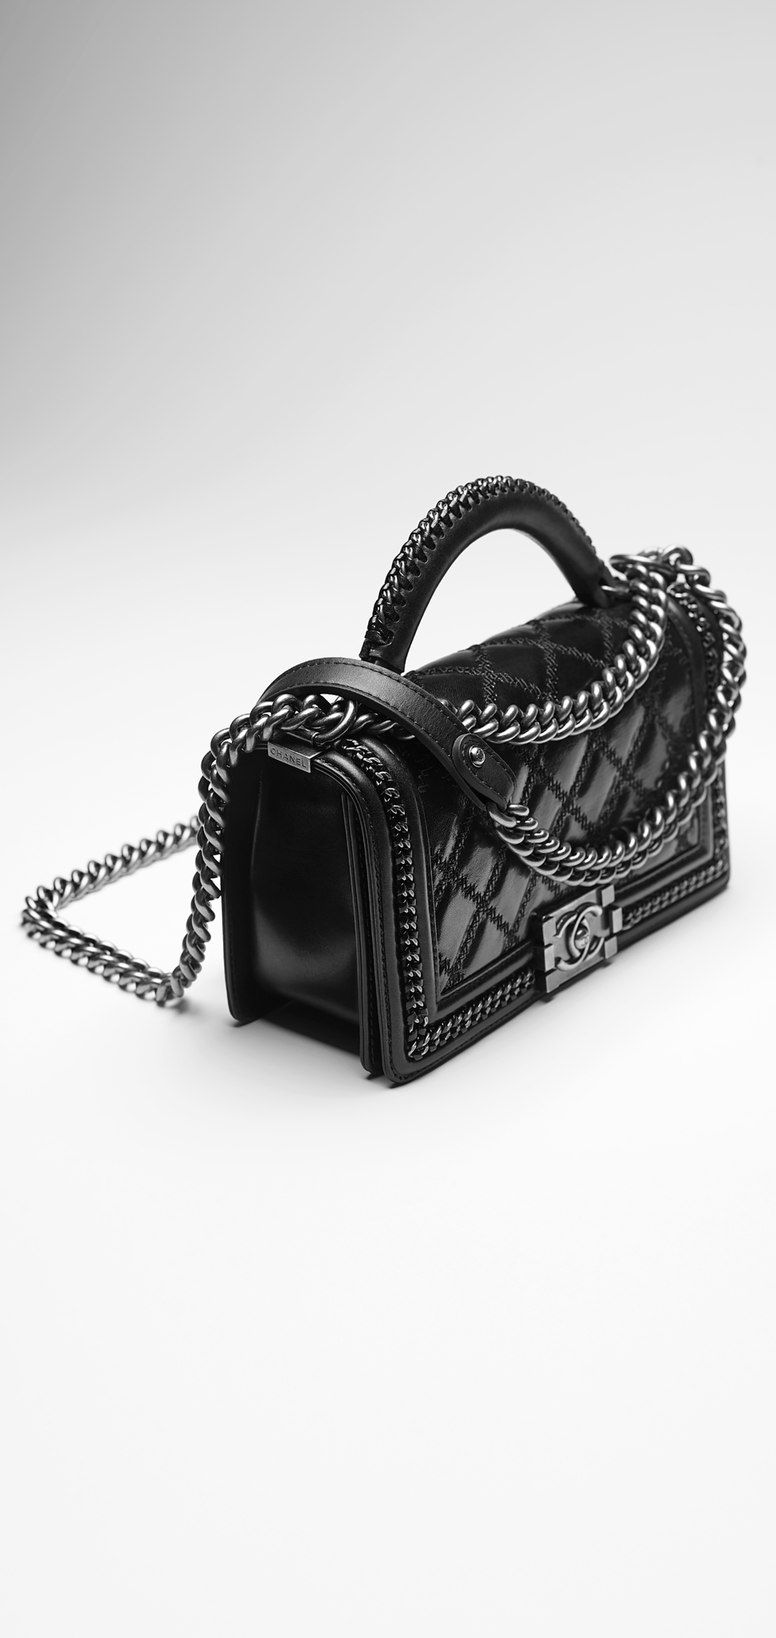 by potpourridesign calfskin boy chanel flap bag with chanel accessories selection. Black Bedroom Furniture Sets. Home Design Ideas